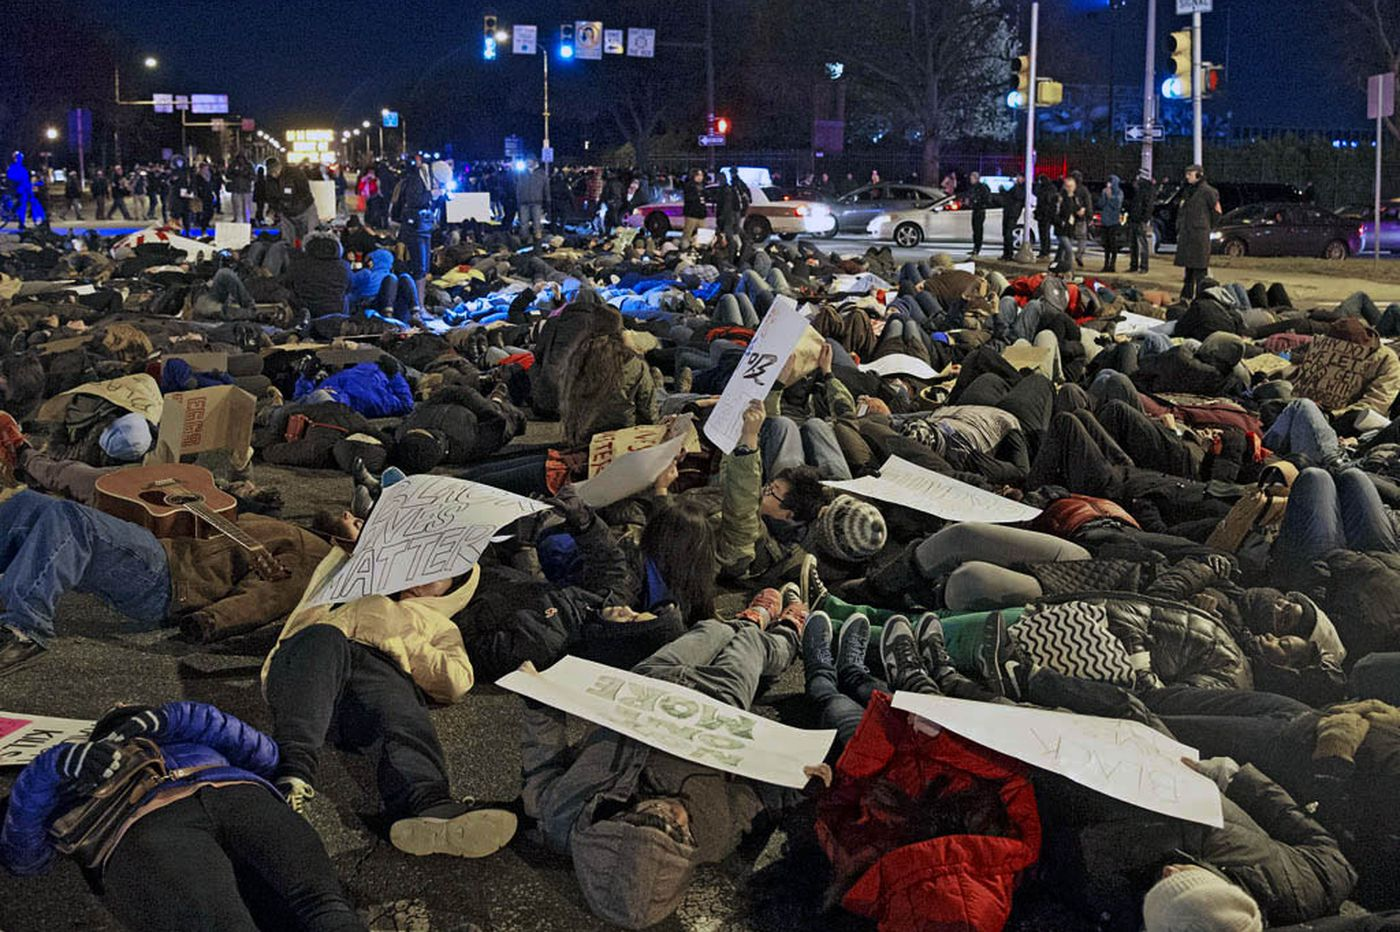 Hundreds take a stand by lying down in Broad St. after Eagles game